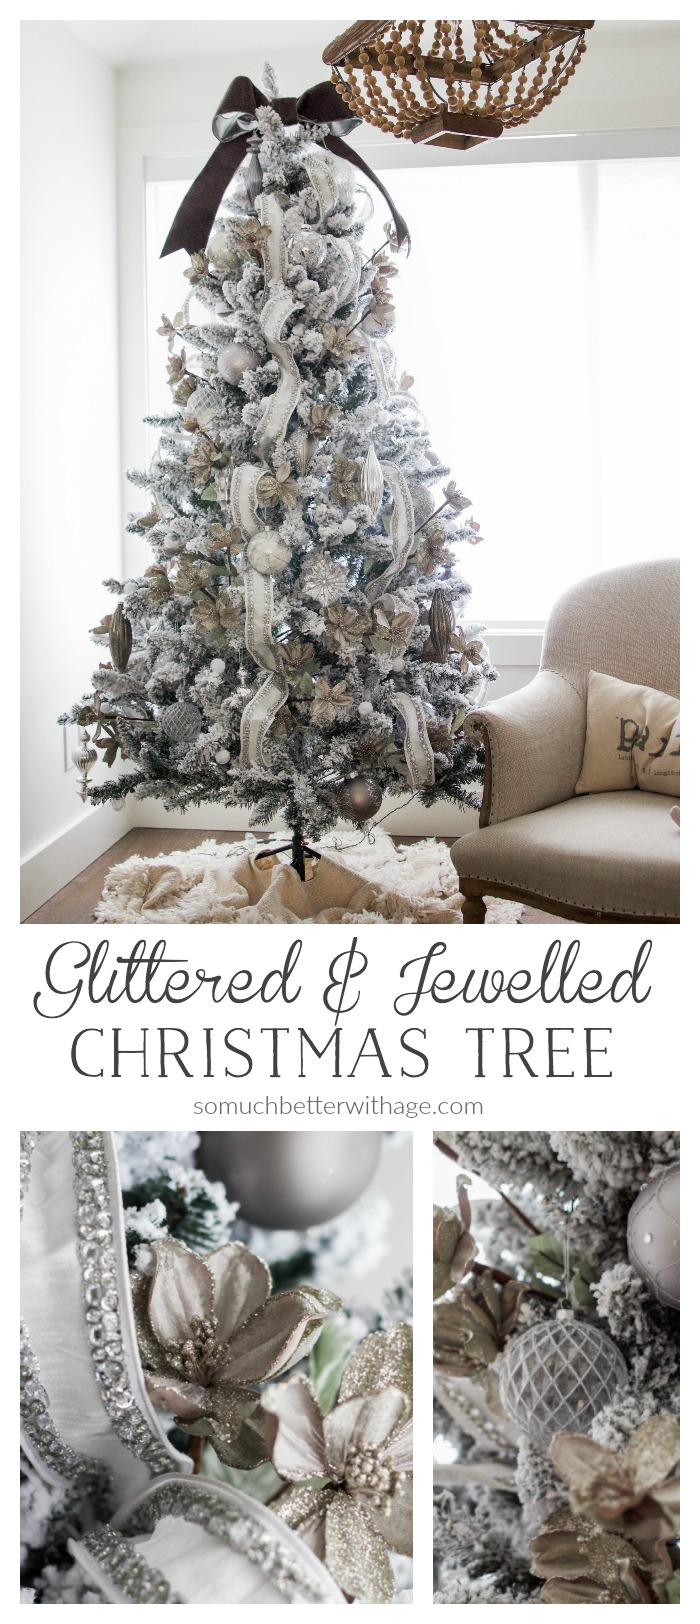 - Glittered and jewelled Christmas tree - So Much Better With Age